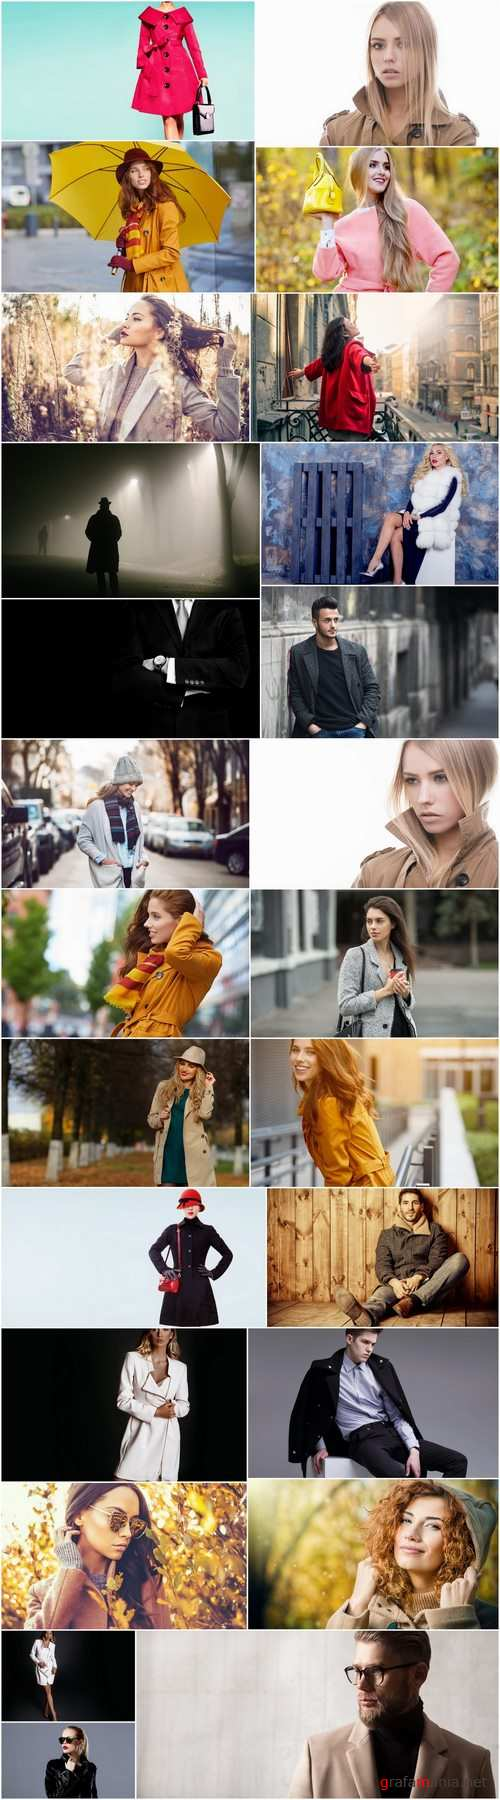 People in warm clothes coat autumn woman man 25 HQ Jpeg